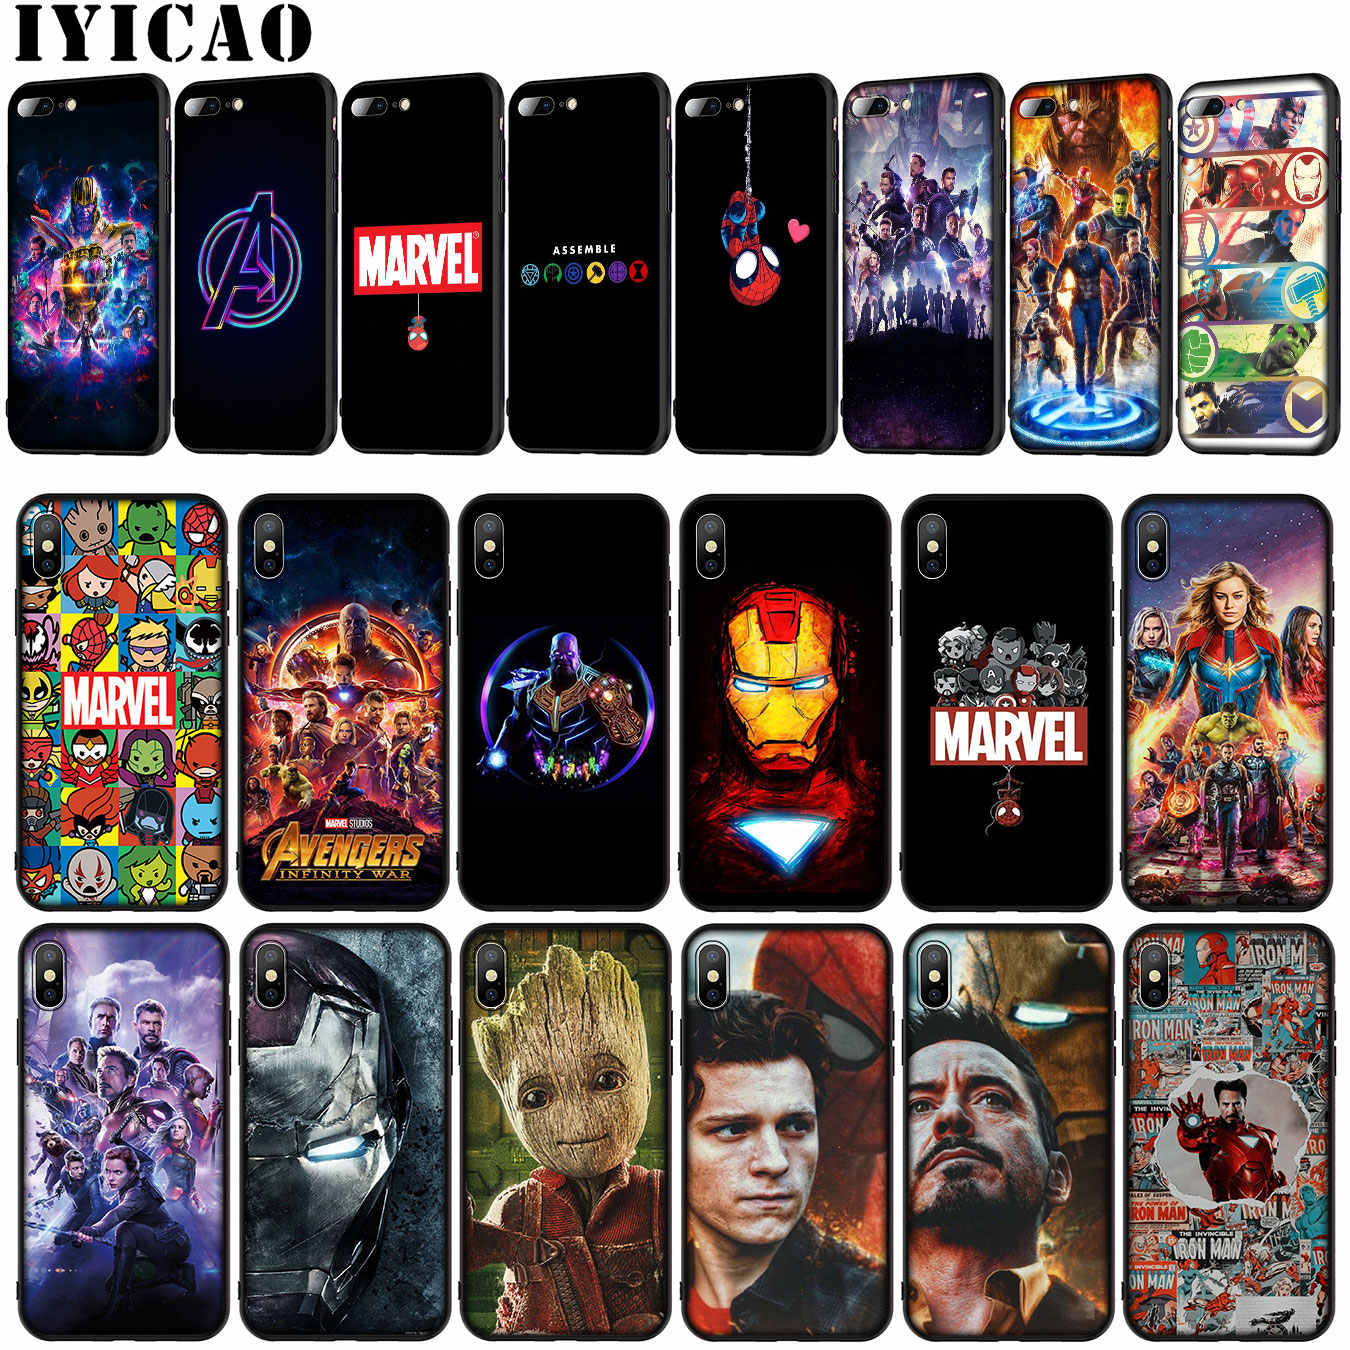 IYICAO Avengers Endgame Marvel Iron Man Thanos Soft Phone Case for iPhone XR X XS Max 6 6S 7 8 Plus 5 5S SE Tom Holland Cover